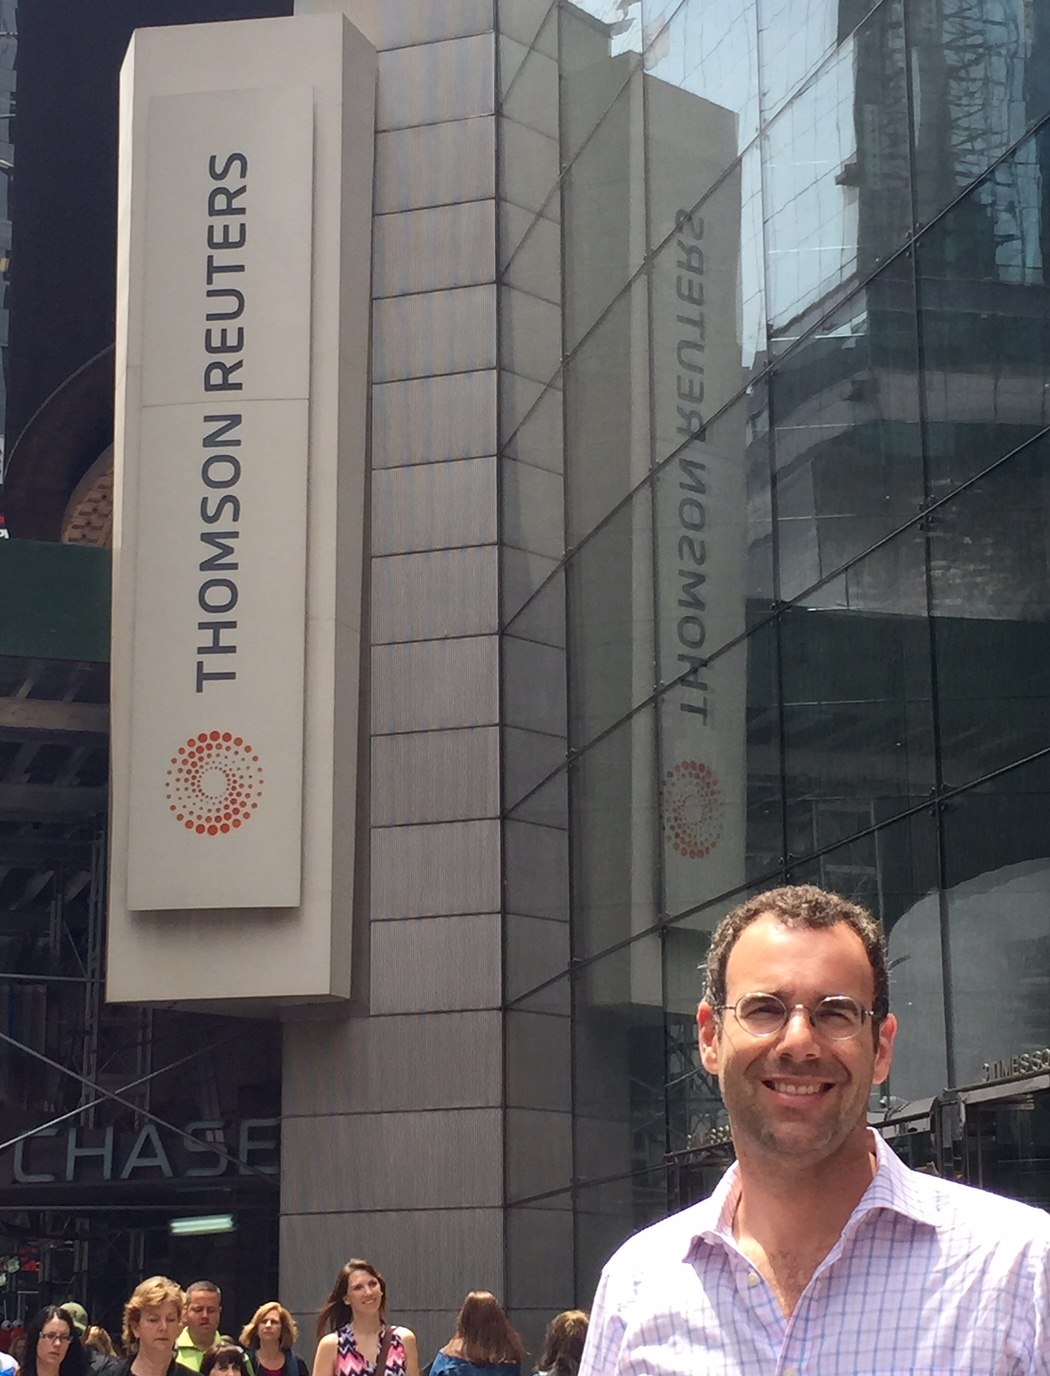 Neil standing in front of the Times Squares location of Thomson Reuters